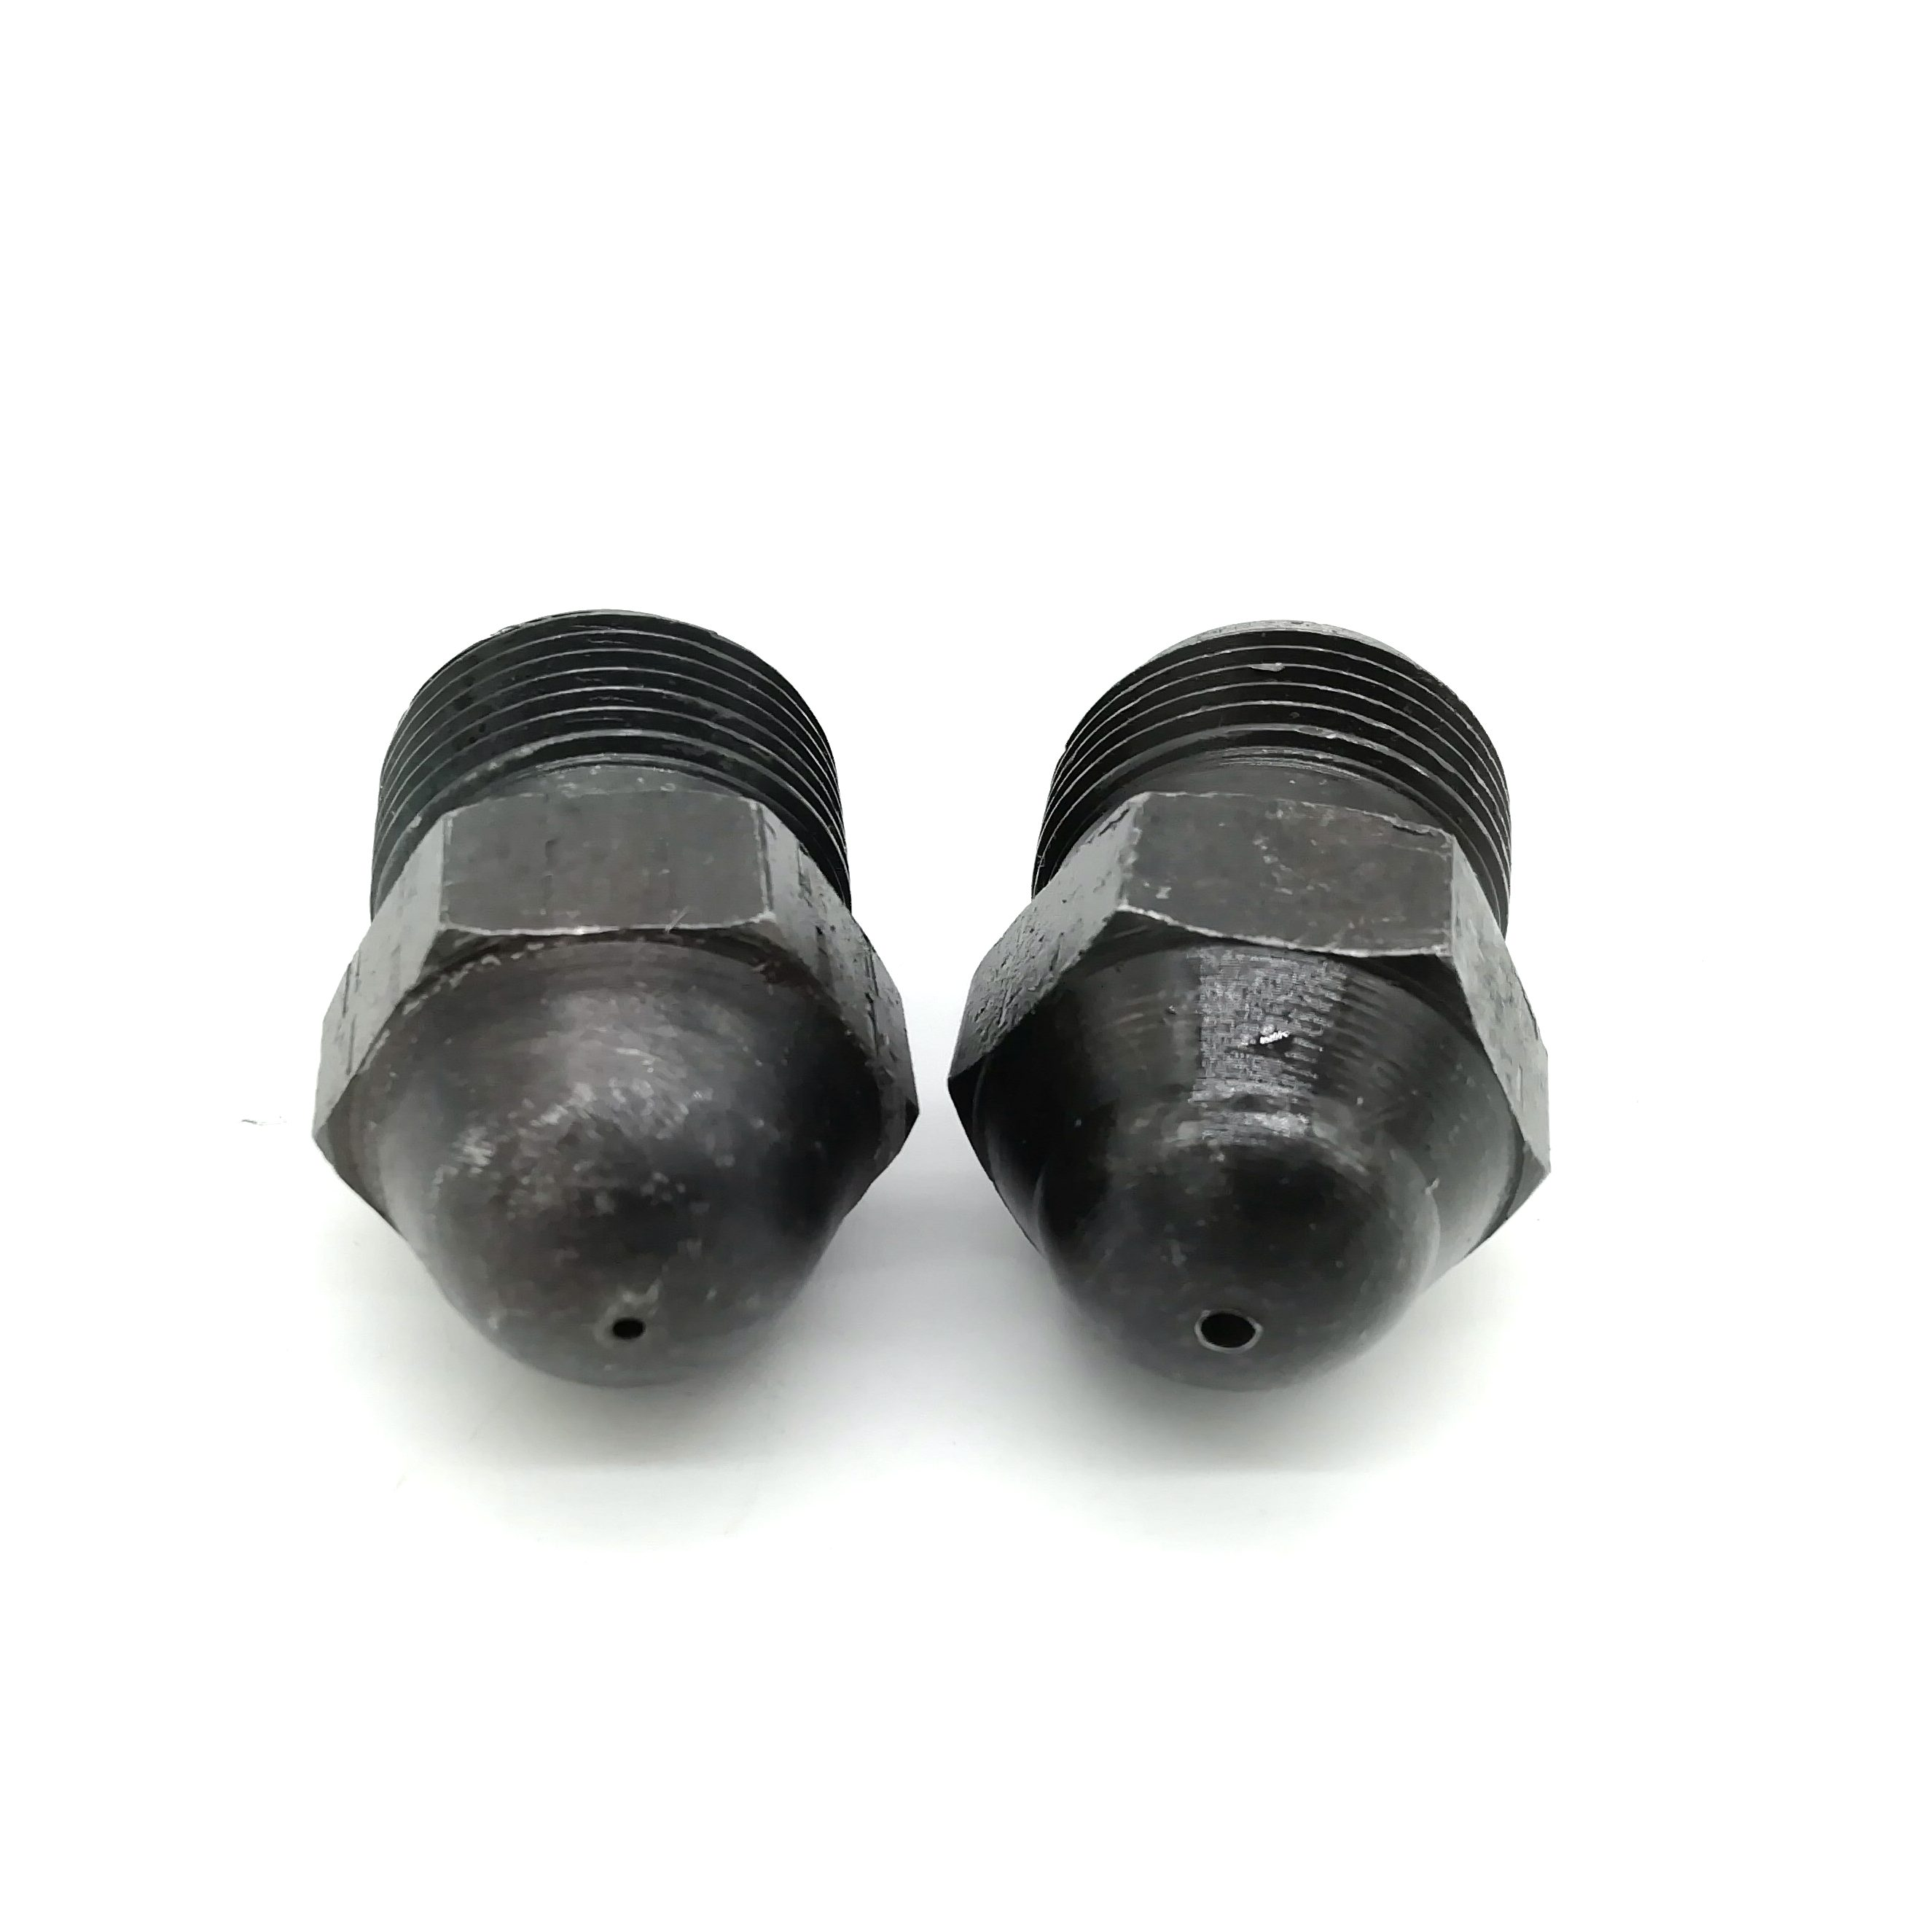 1.75mm Or 3mm Nozzle For 20mm Diameter Extruder Barrel And Screw